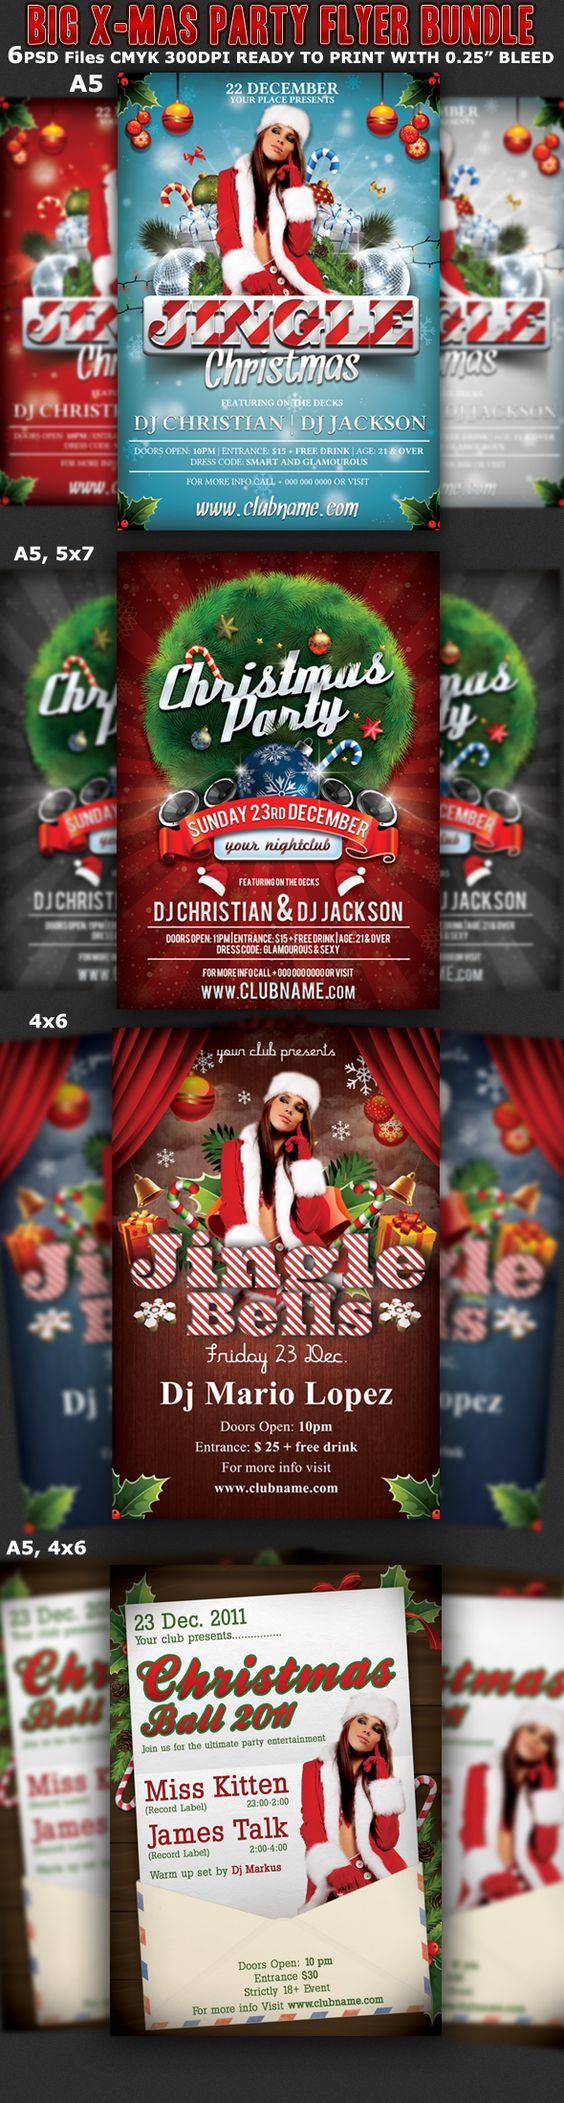 christmas party flyer templates bundle on behance christmas christmas party flyer templates bundle on behance christmas design celebration christmas event flyers